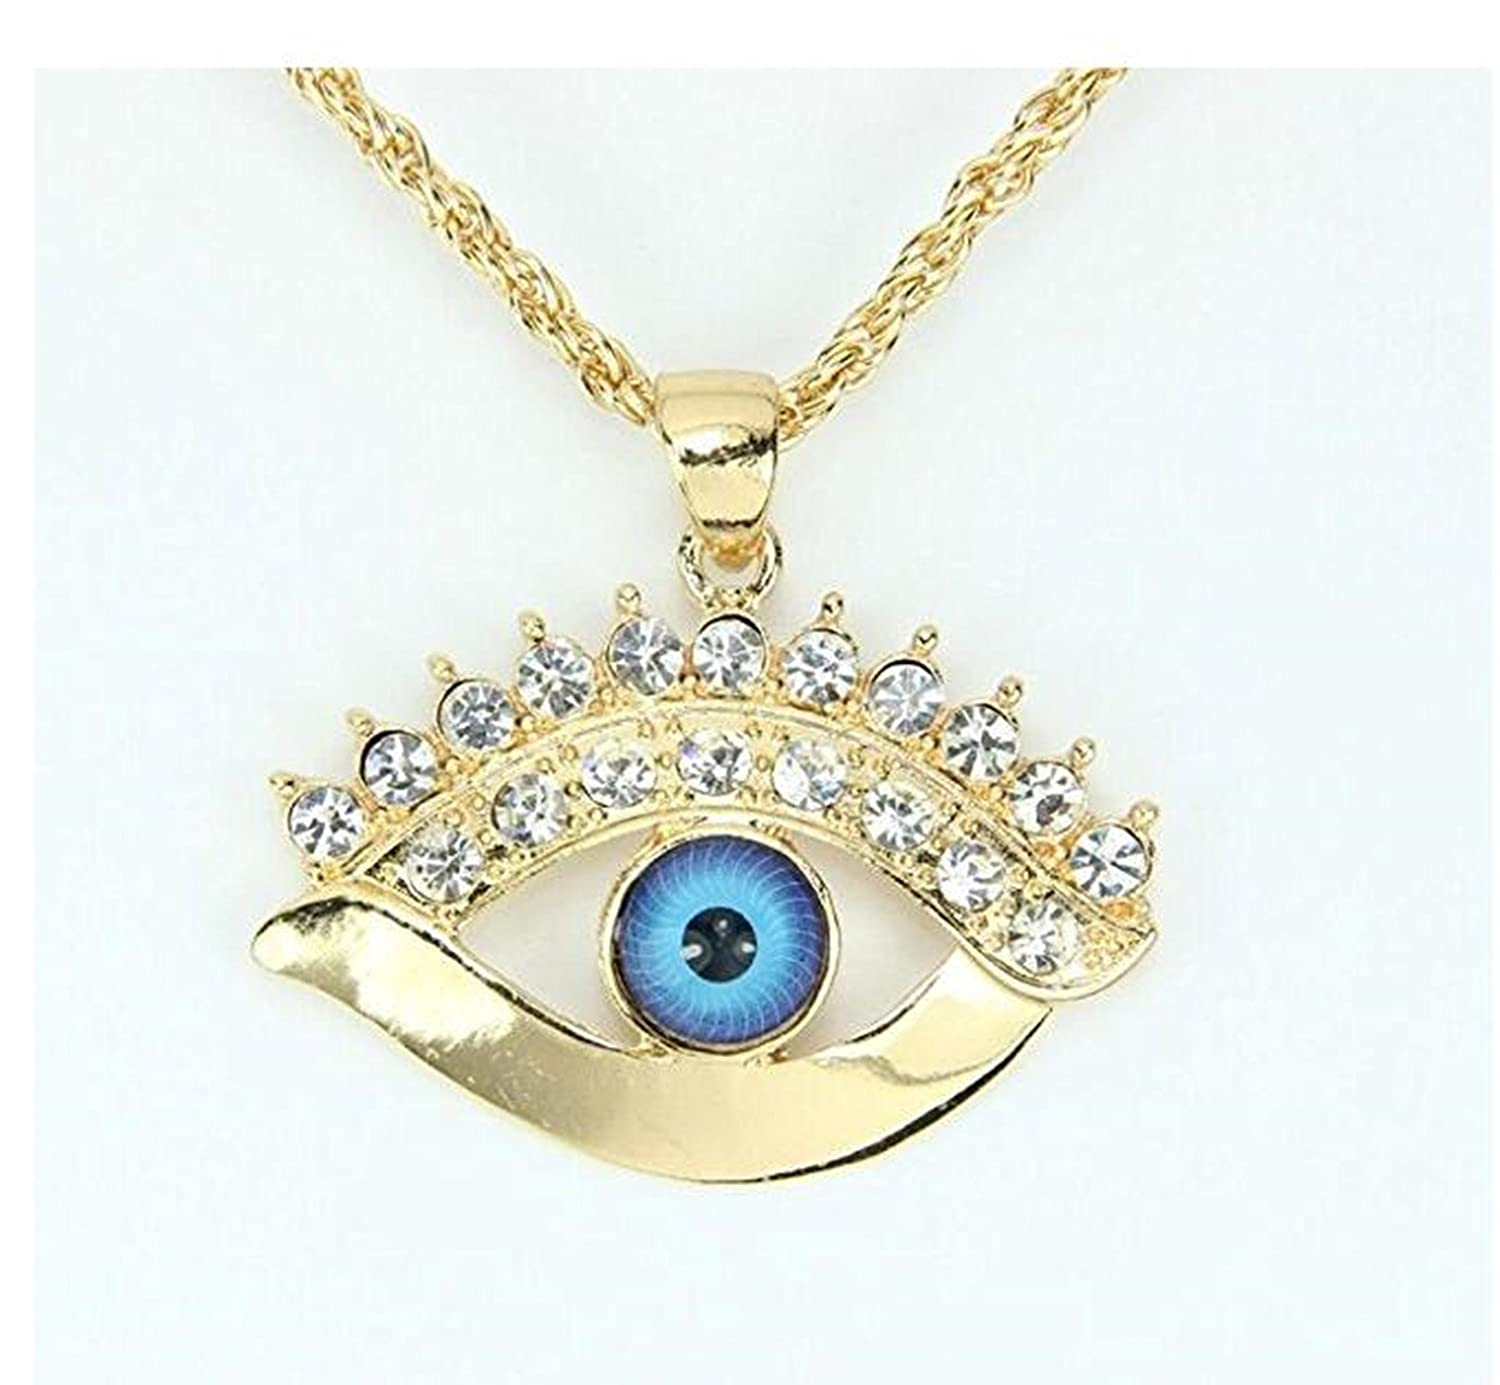 EV-12 Wiipu golden evil eye Pendant Necklace with blue eye,good luck necklace